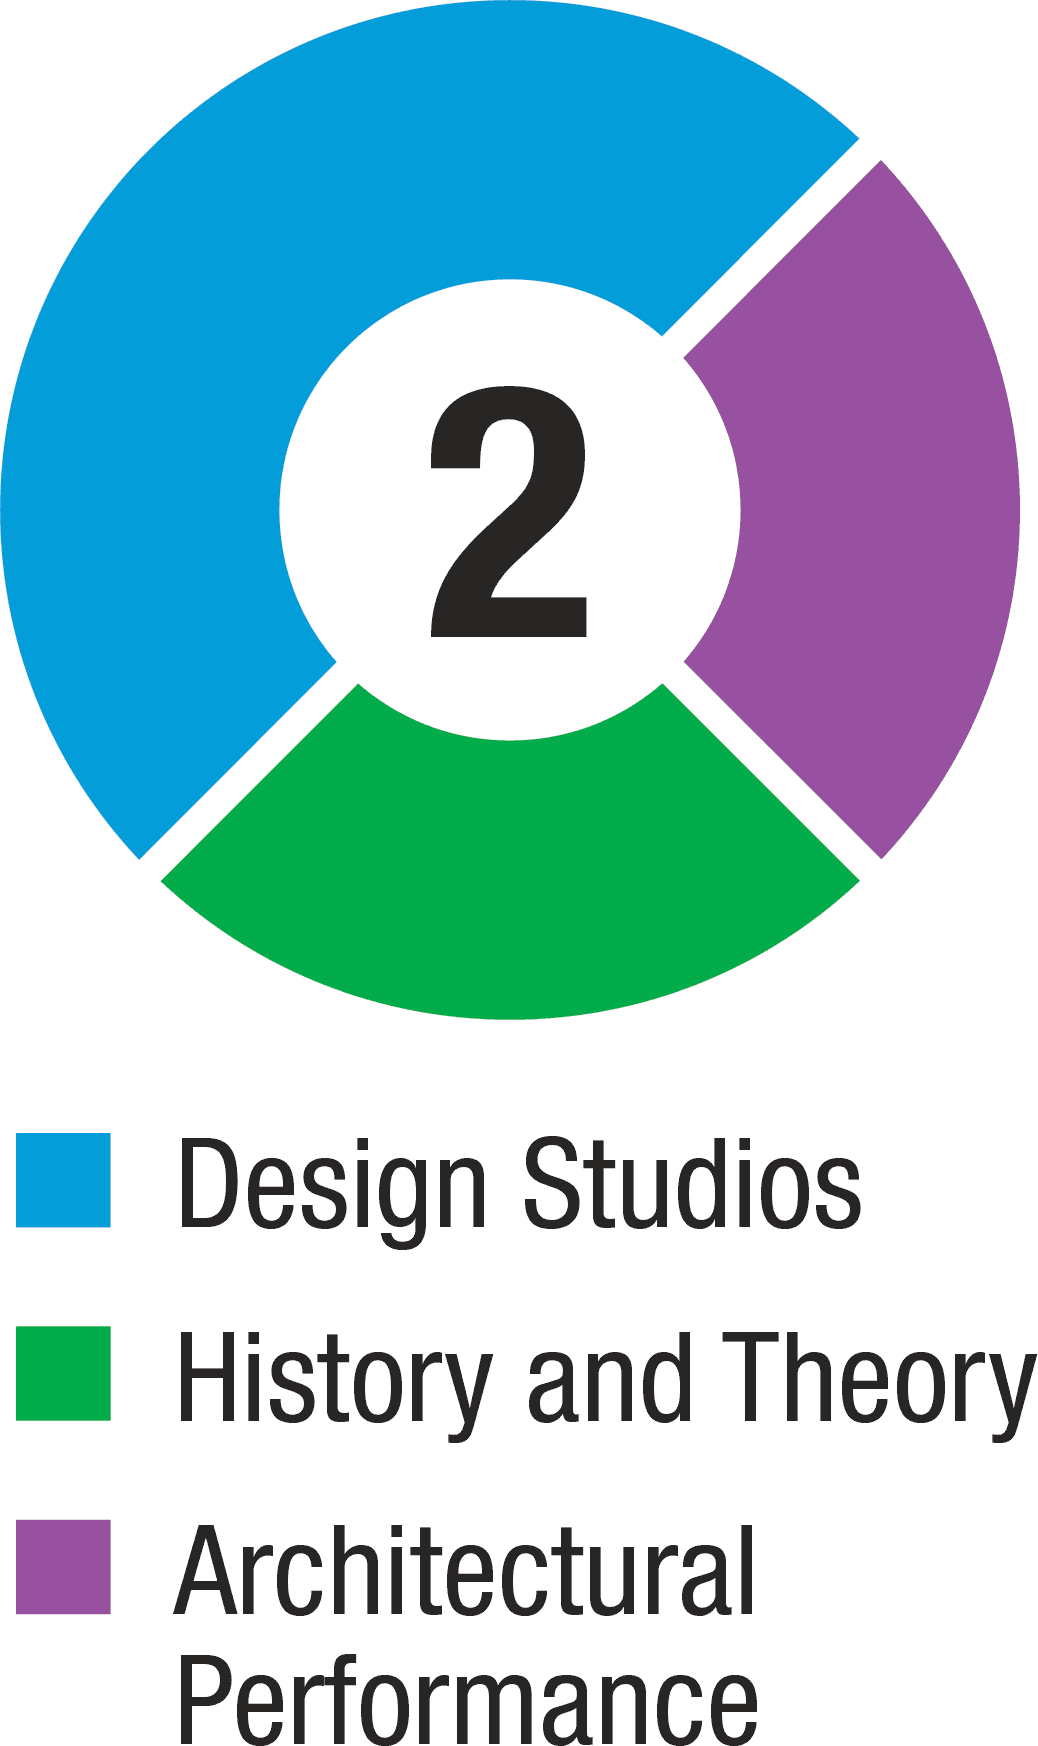 Design Studios: 50%, Architecture Communications: 25%, History and Theory: 25%